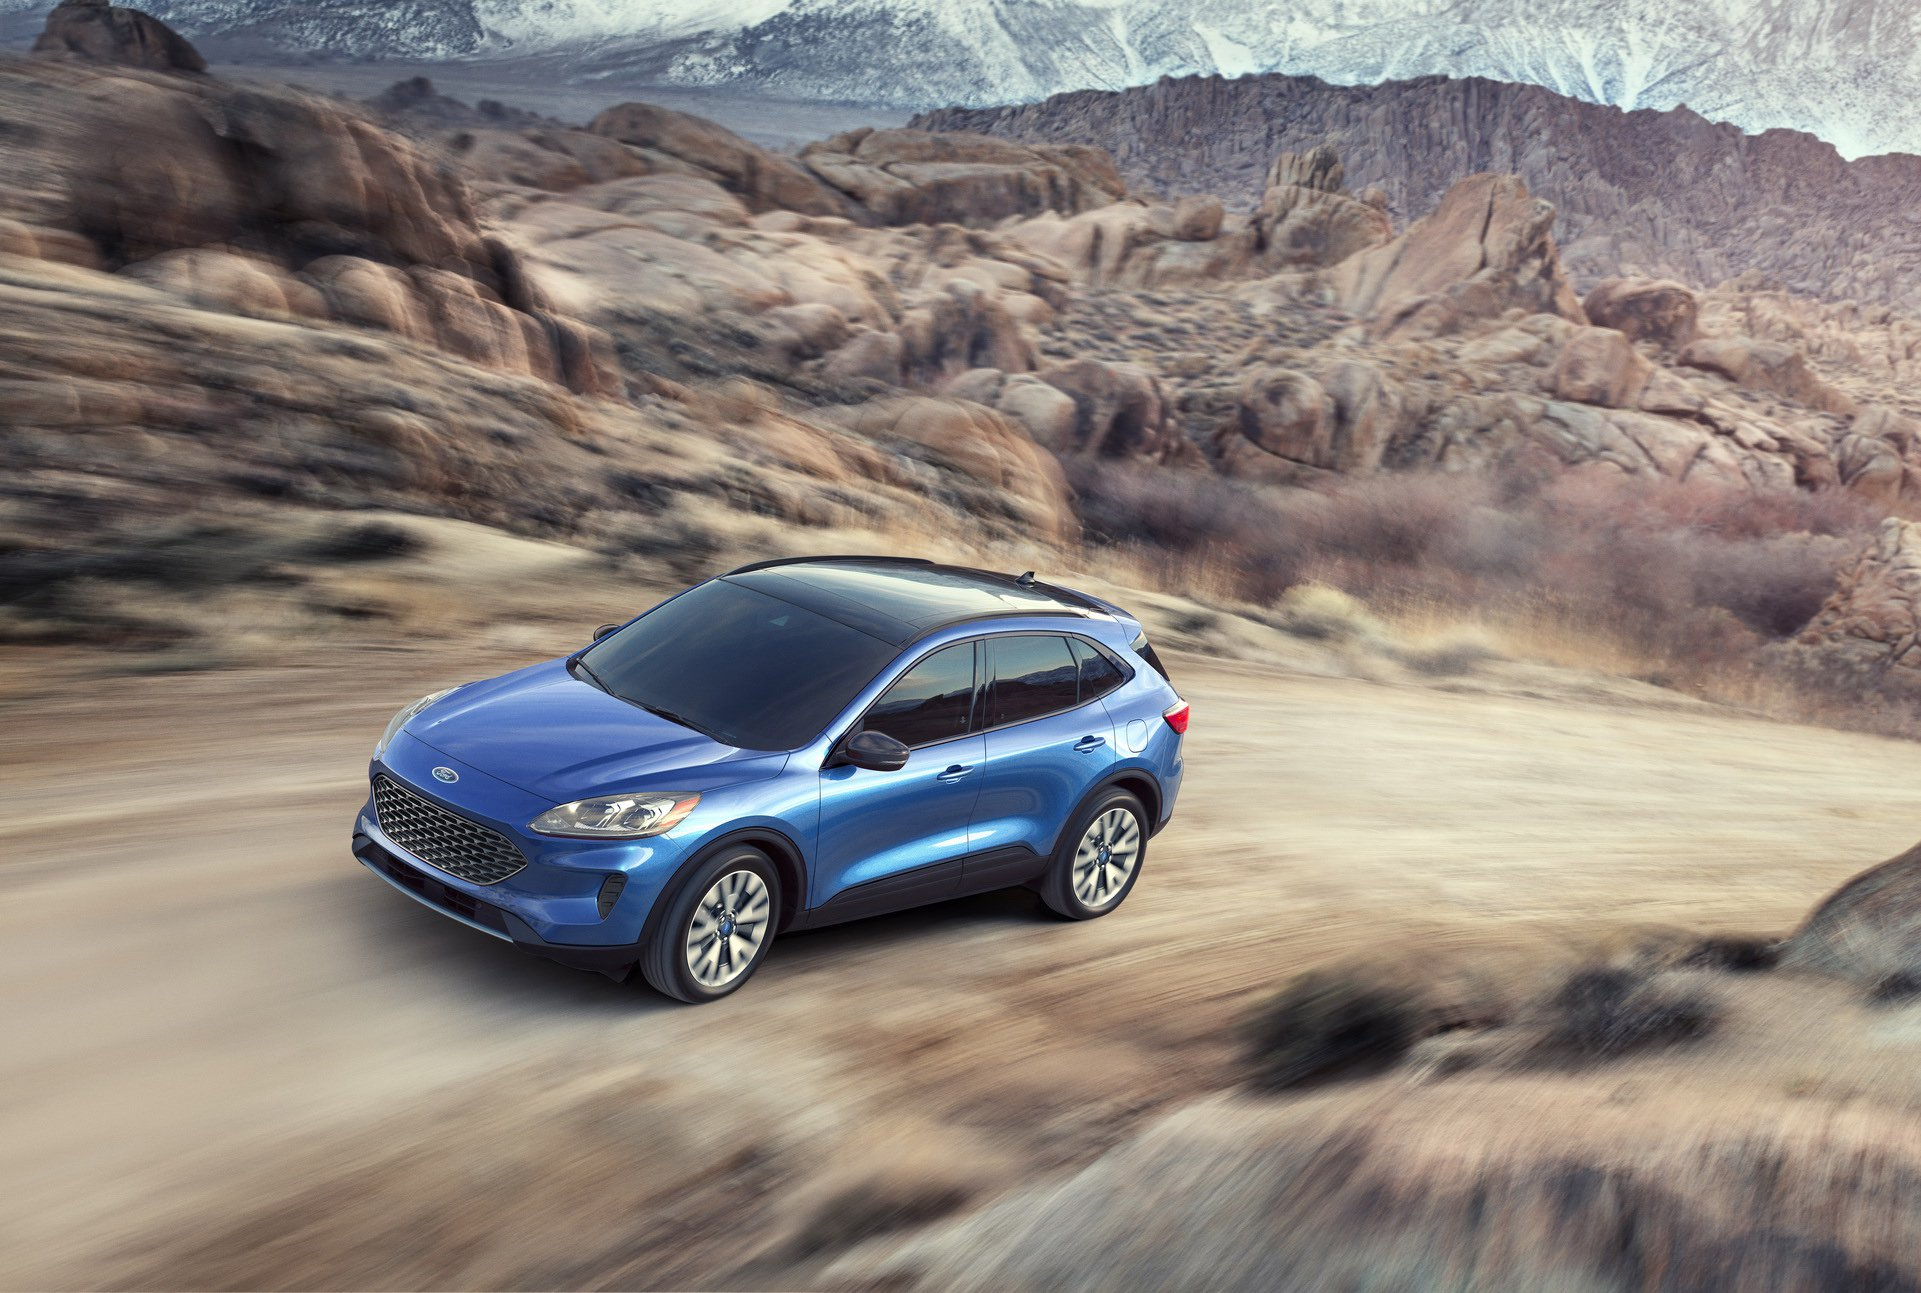 Ford Fusion Upgrades >> 2020 Ford Escape Unveiled With Car-Like Look, PHEV and Hybrid Versions - autoevolution